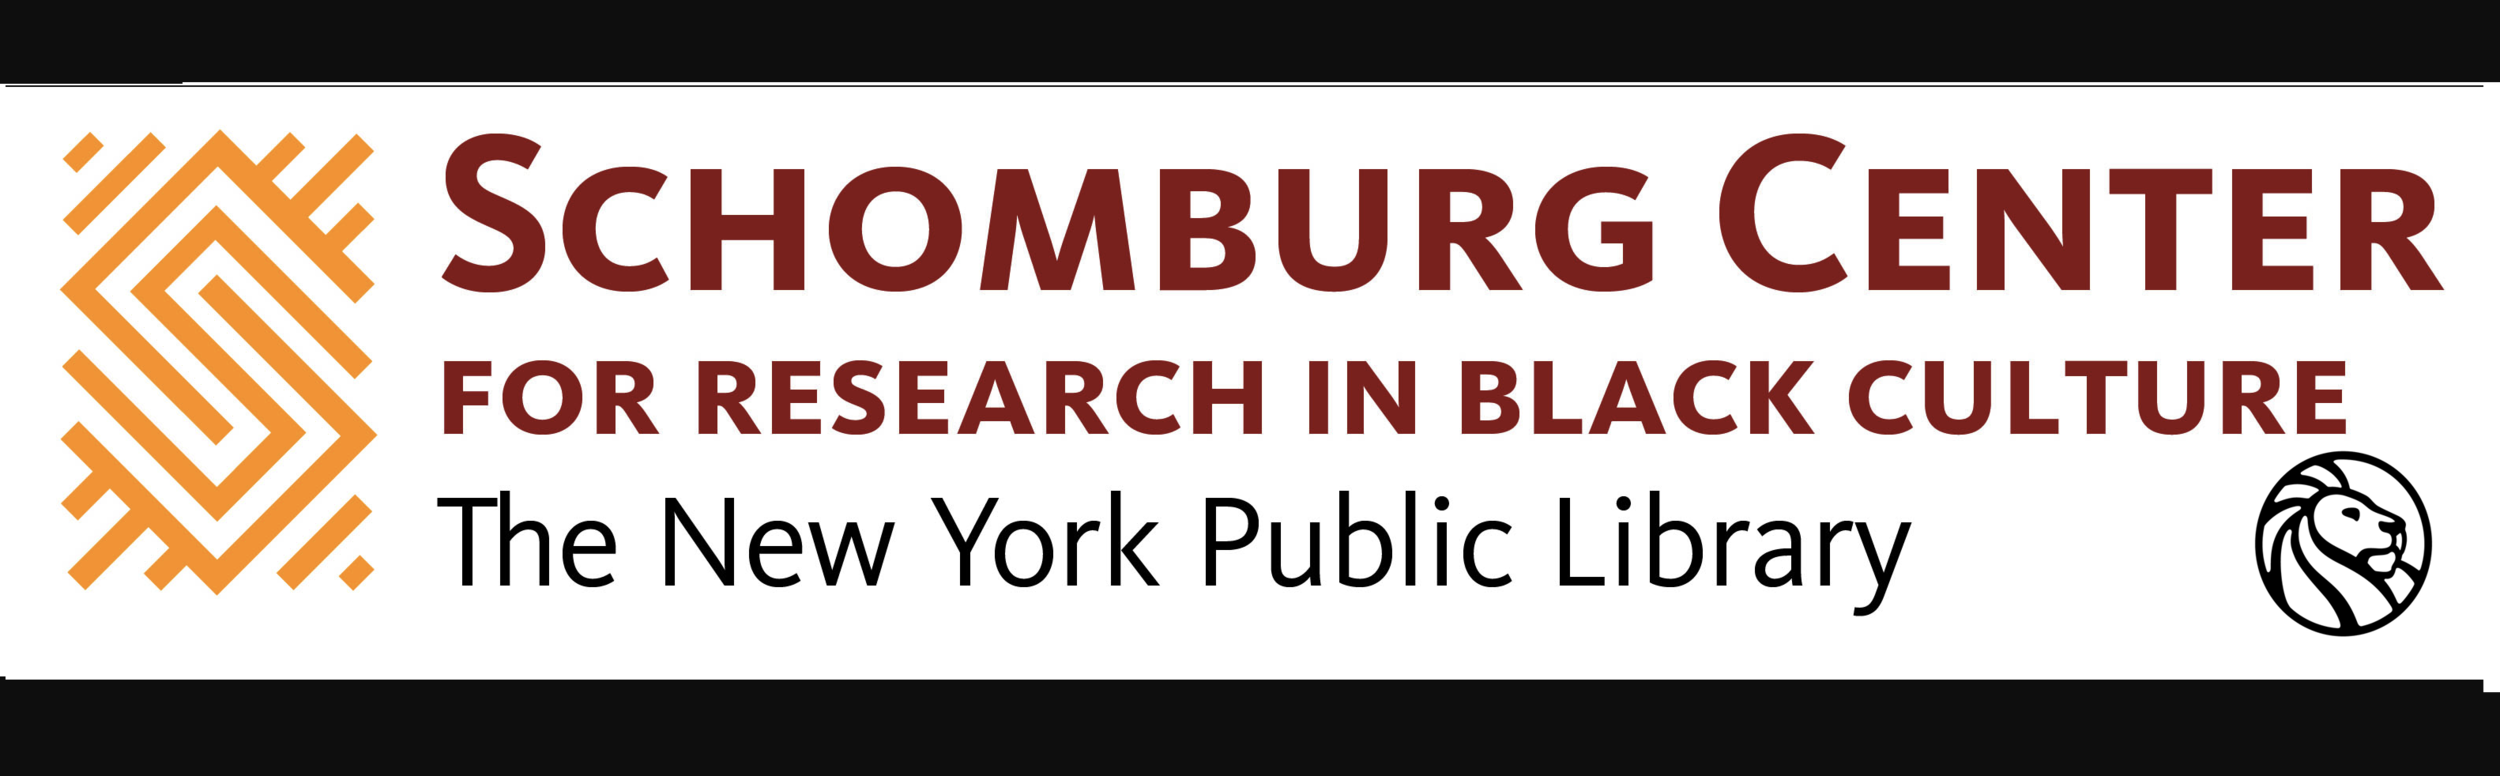 On April 9, 2018 the Laundromat Project and the   Schomberg Center for Research in Black Culture   sponsored, 'Reimagining Community:Finding Sanctuary in Public Spaces' a conversation with Tomie Arai, Sydnie Mosley, Justin Garrett Moore. To view the video:   https://www.facebook.com/SchomburgCenter/videos/10155292270455079/